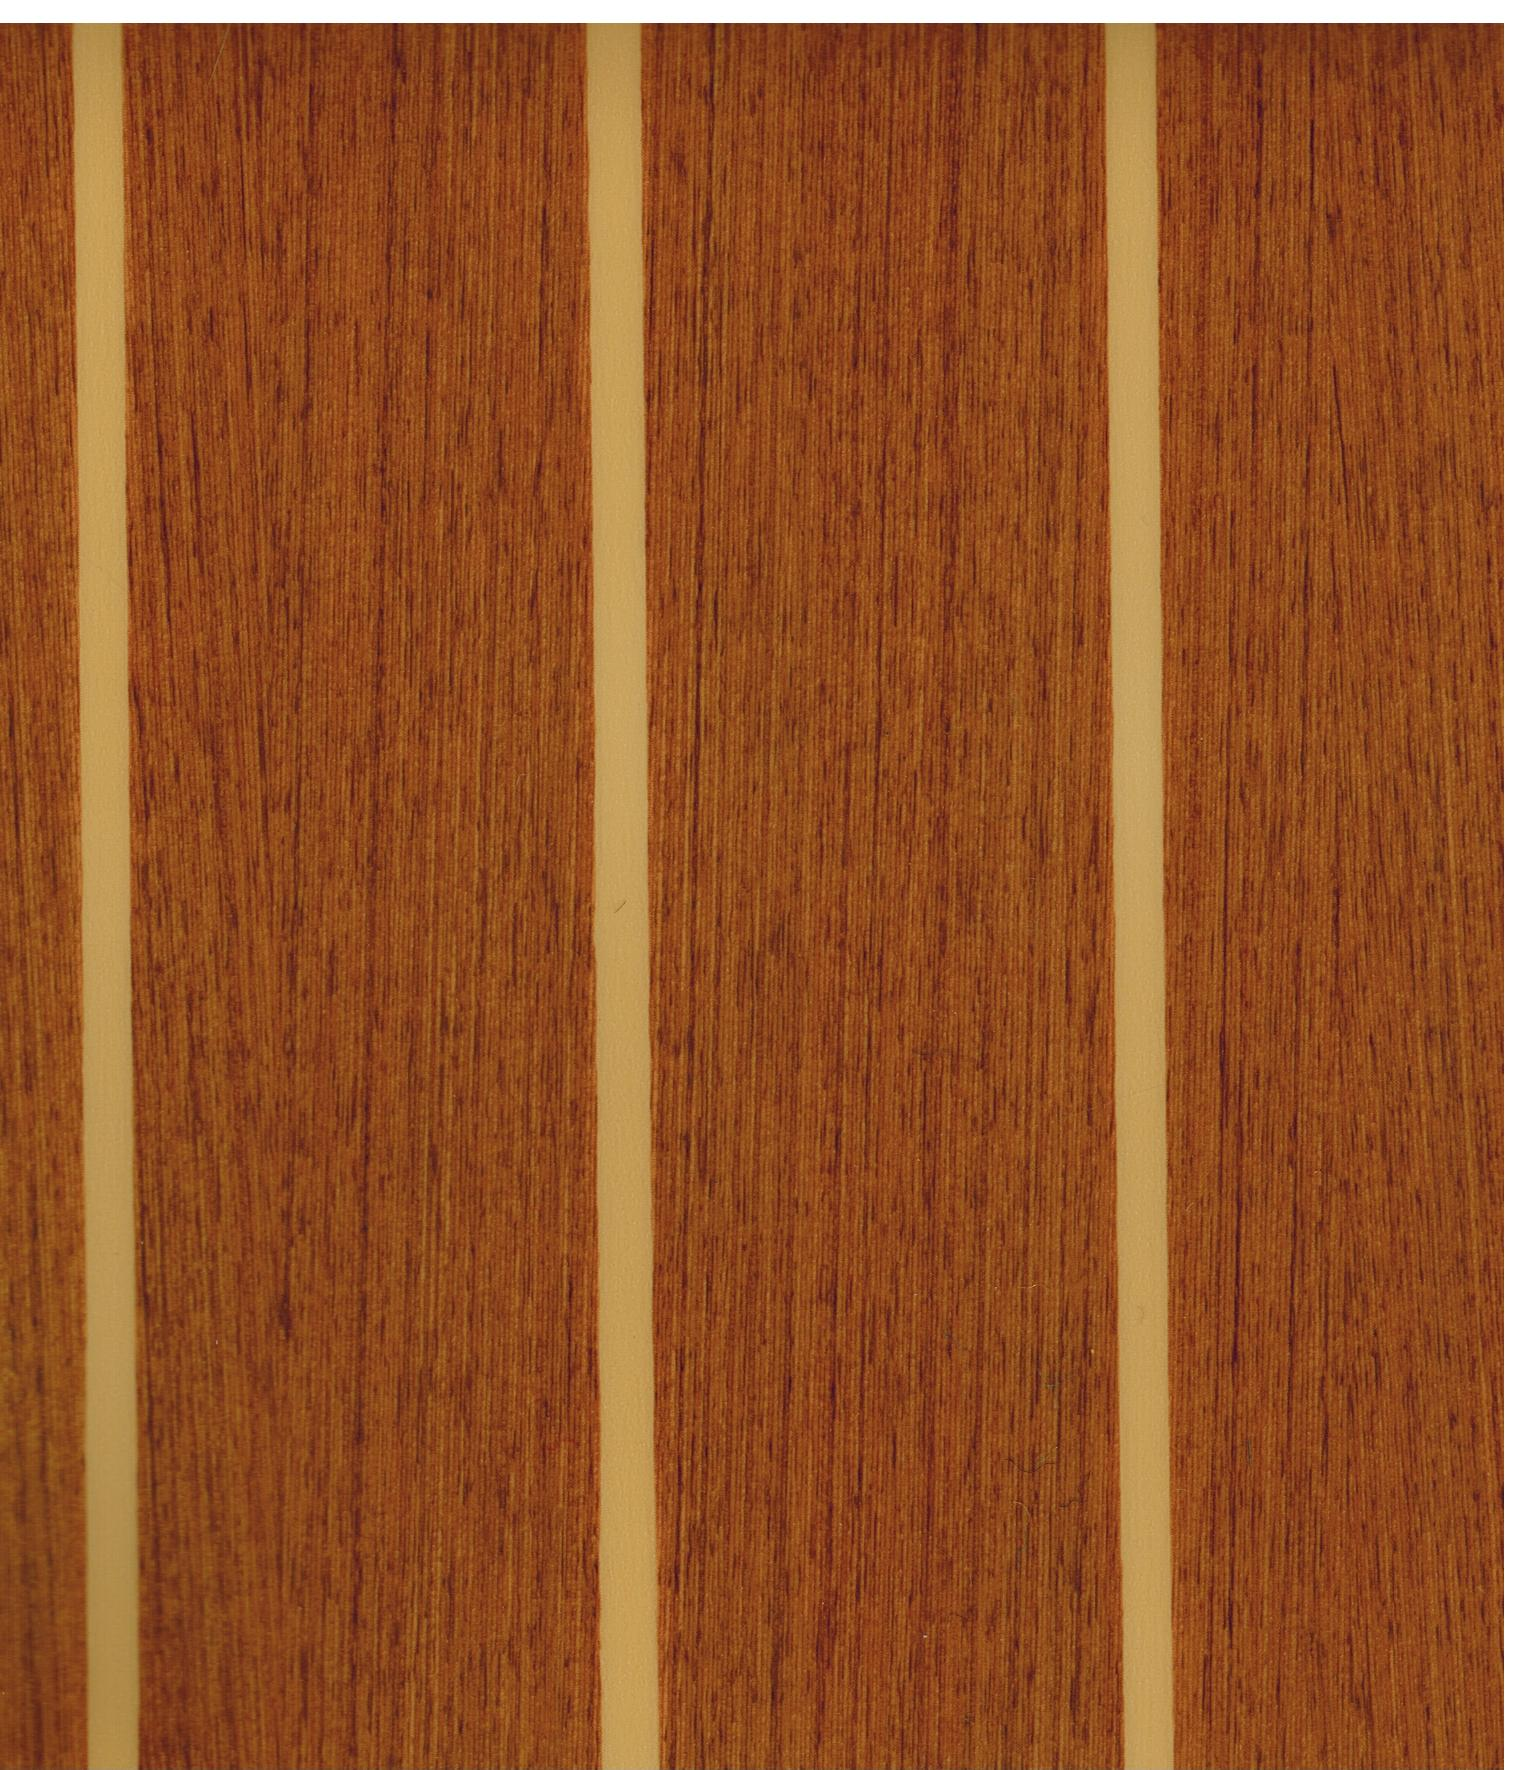 Teak Holly Vinyl Flooring